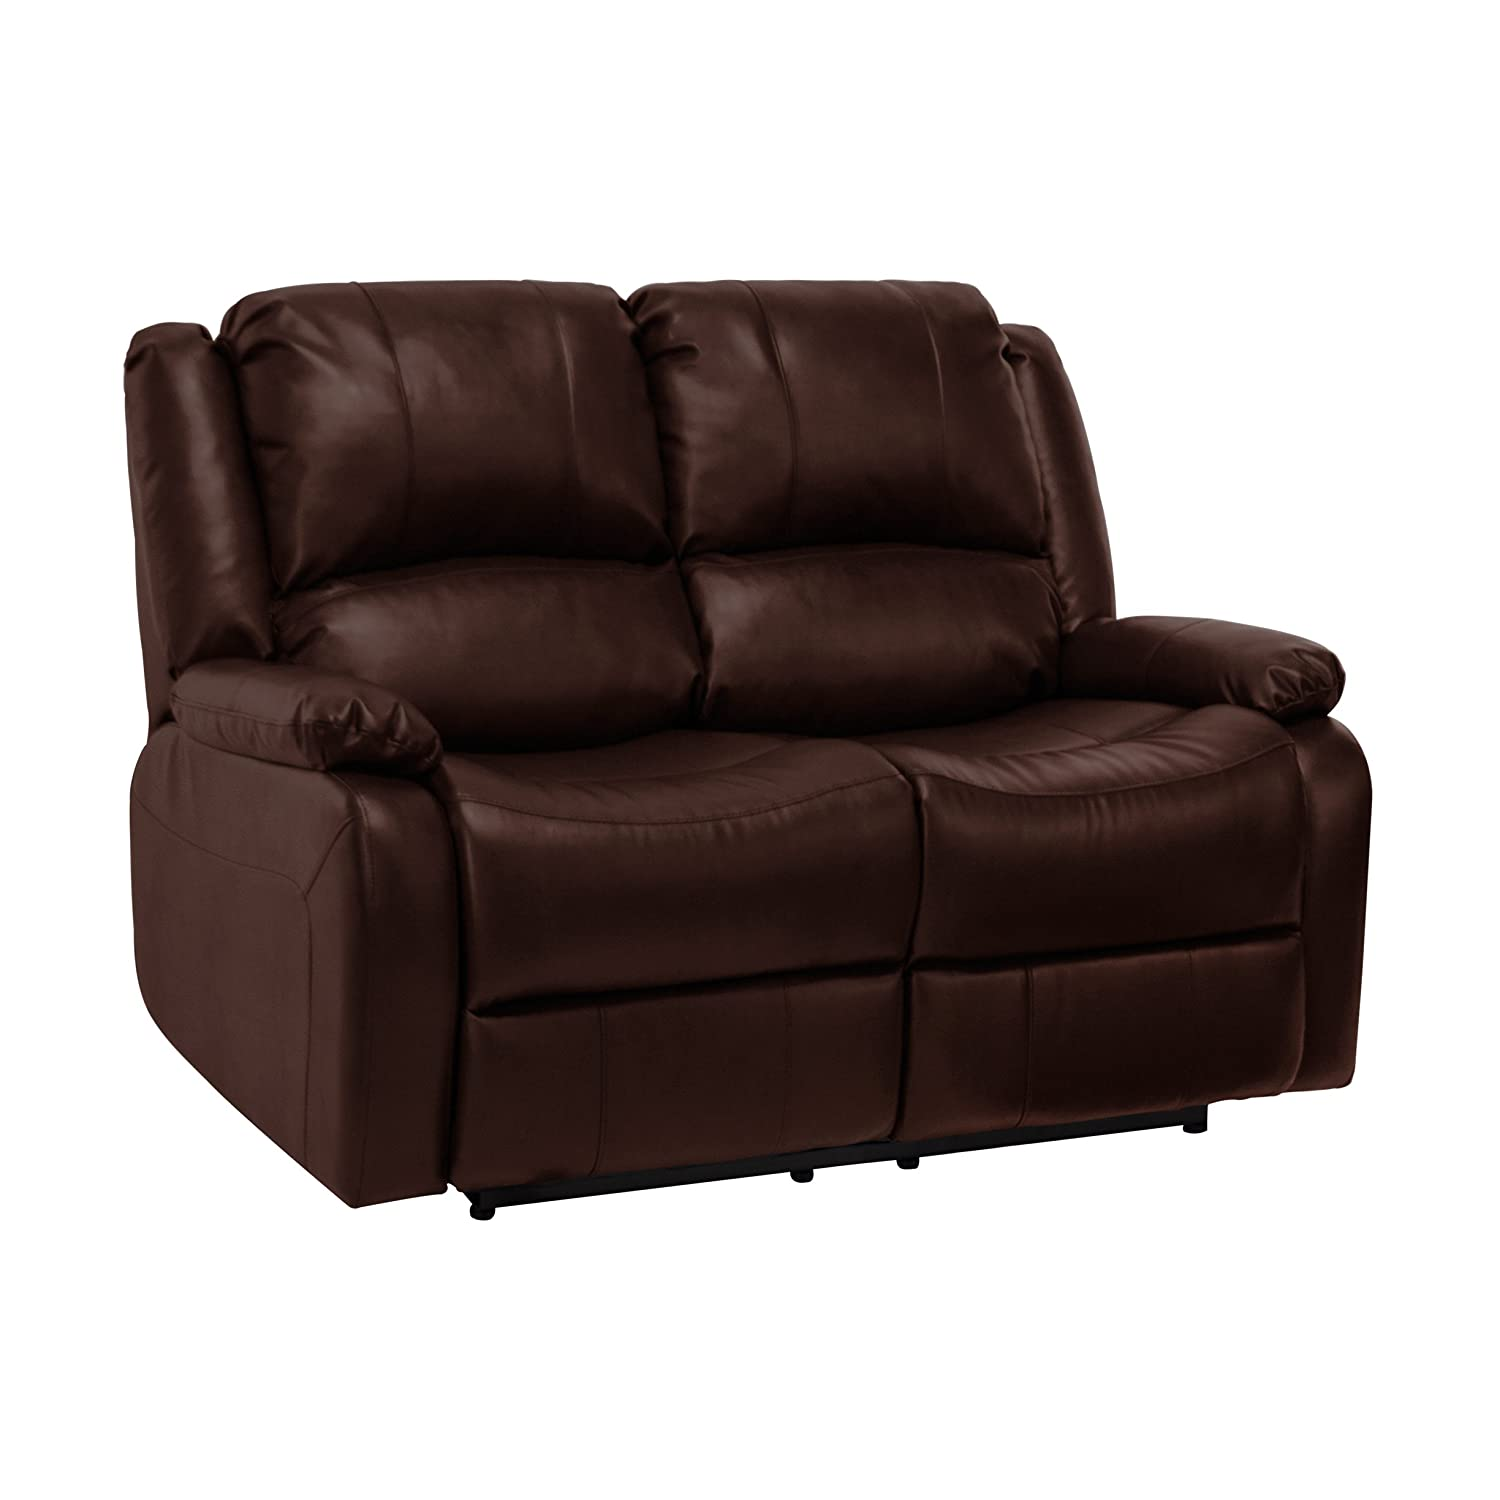 Small Couches For Bedrooms